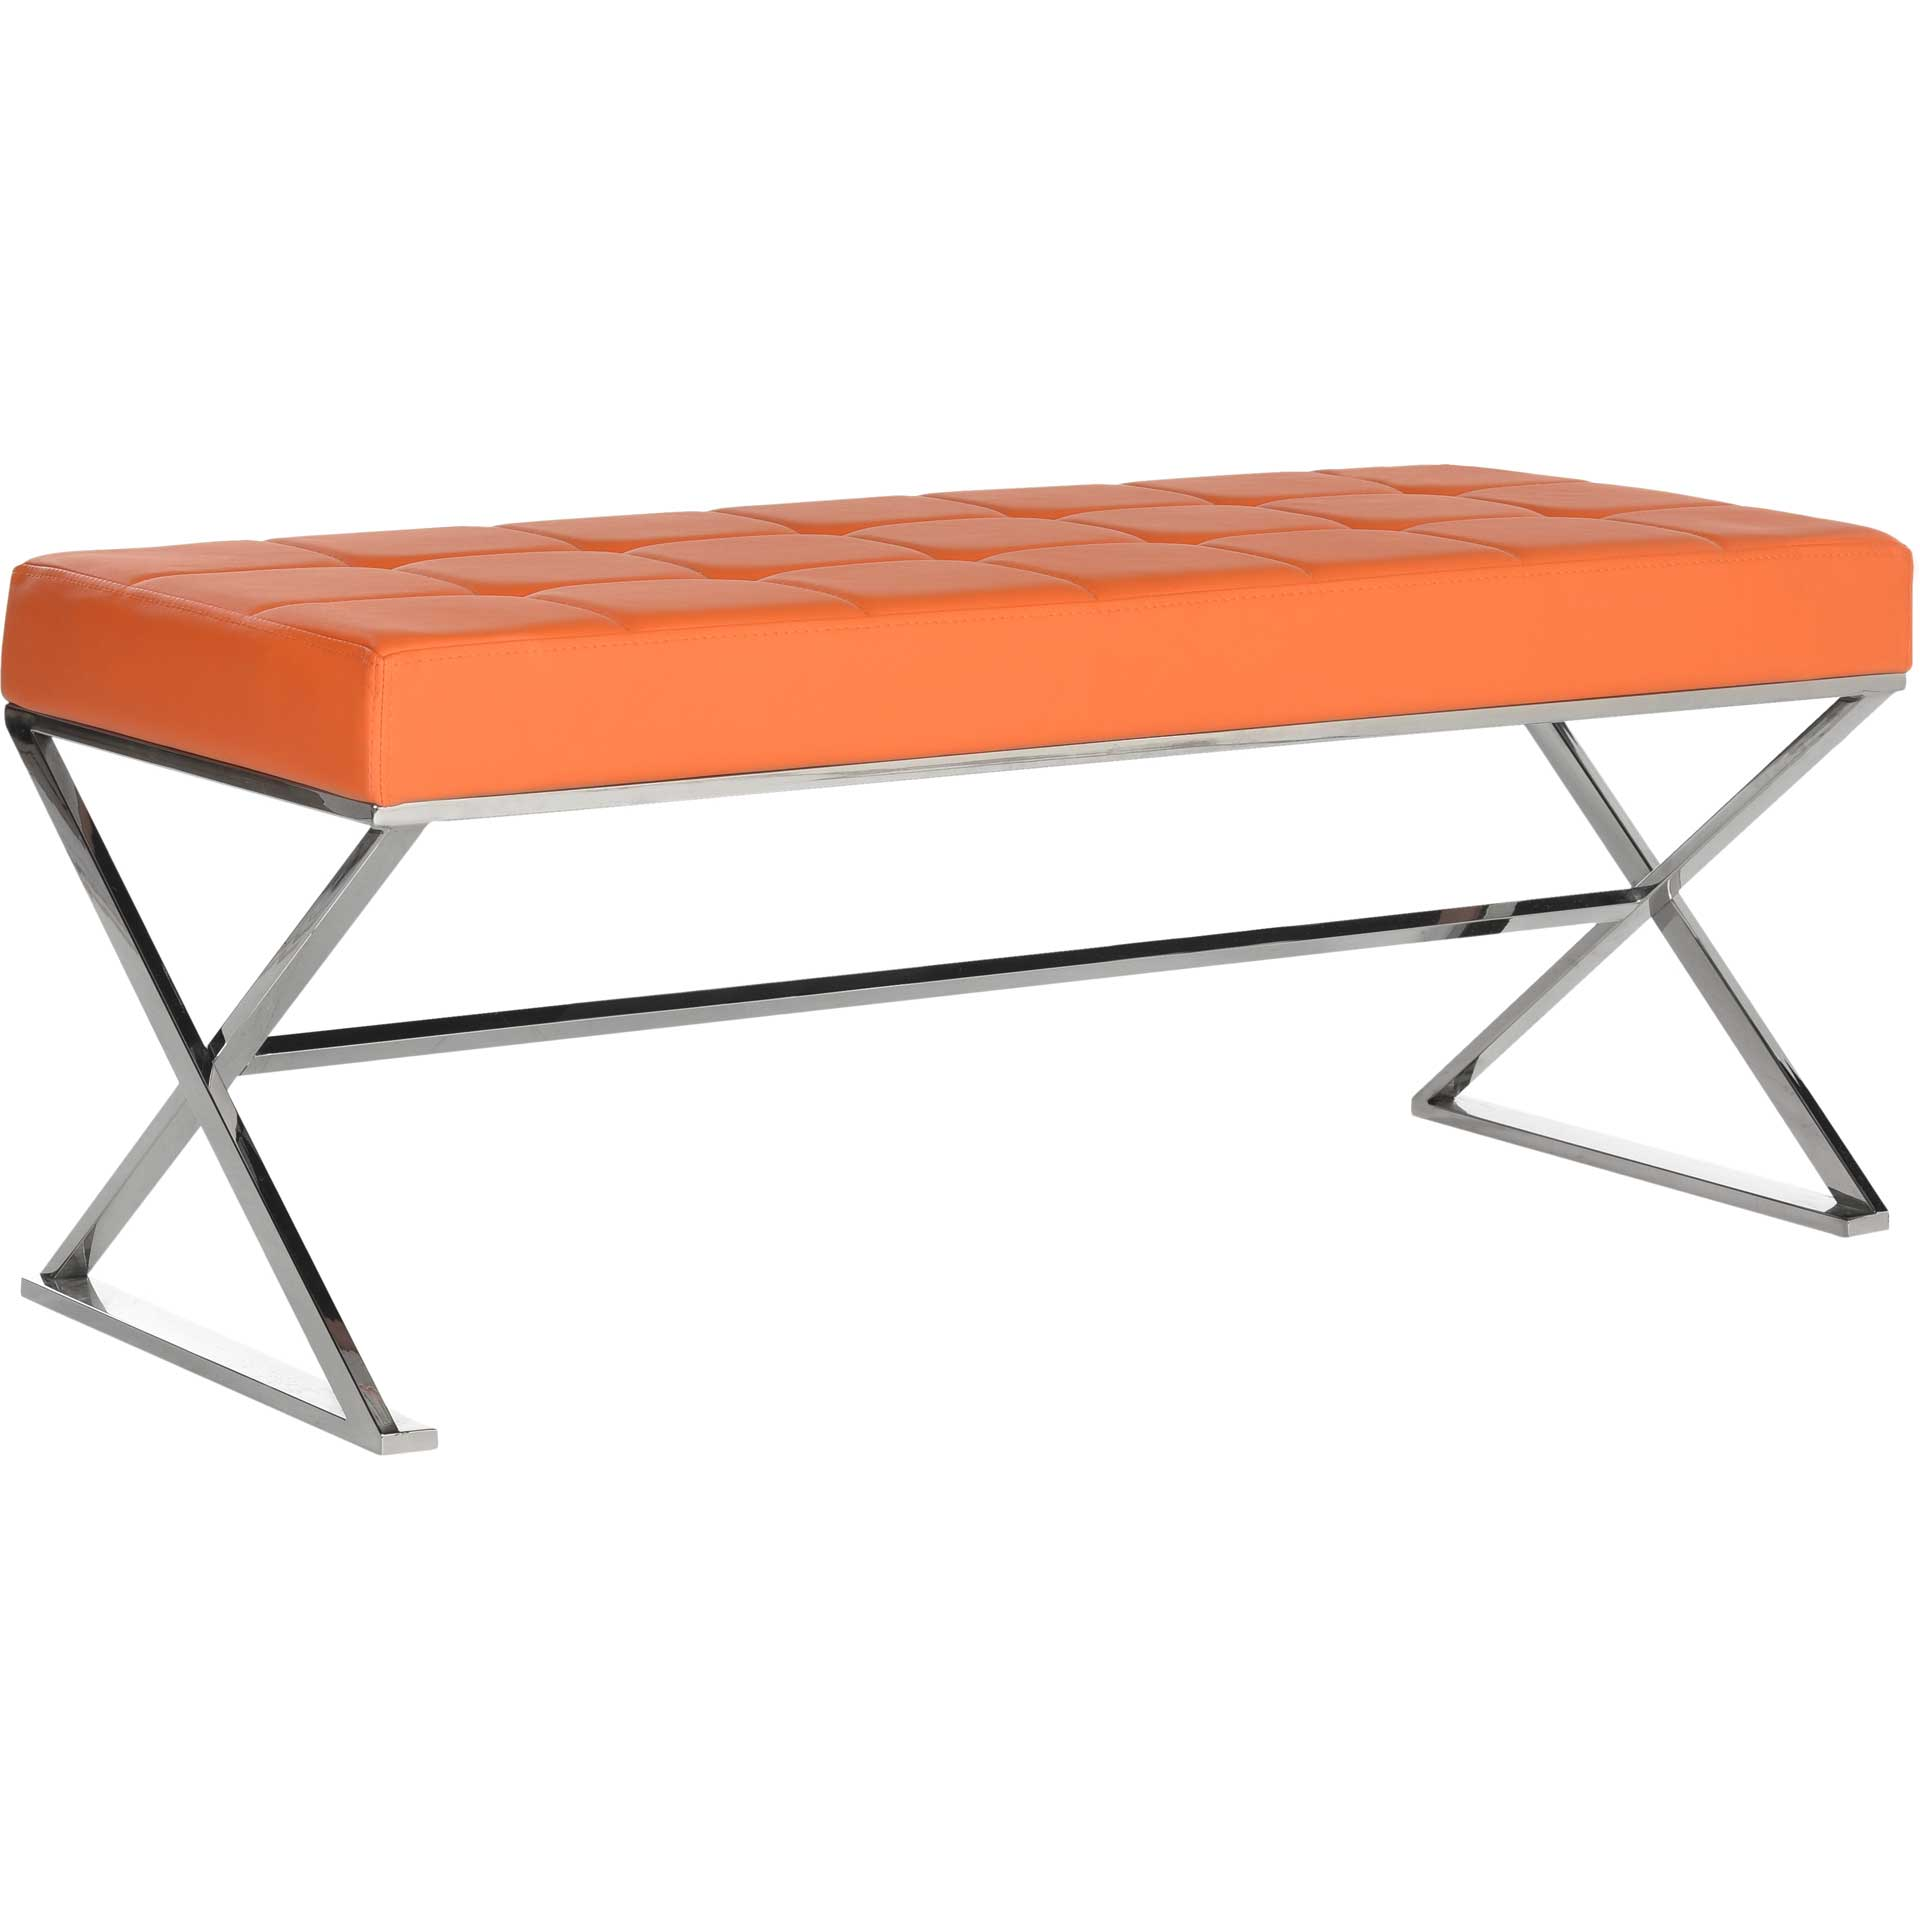 Mingle Bench Orange/Chrome